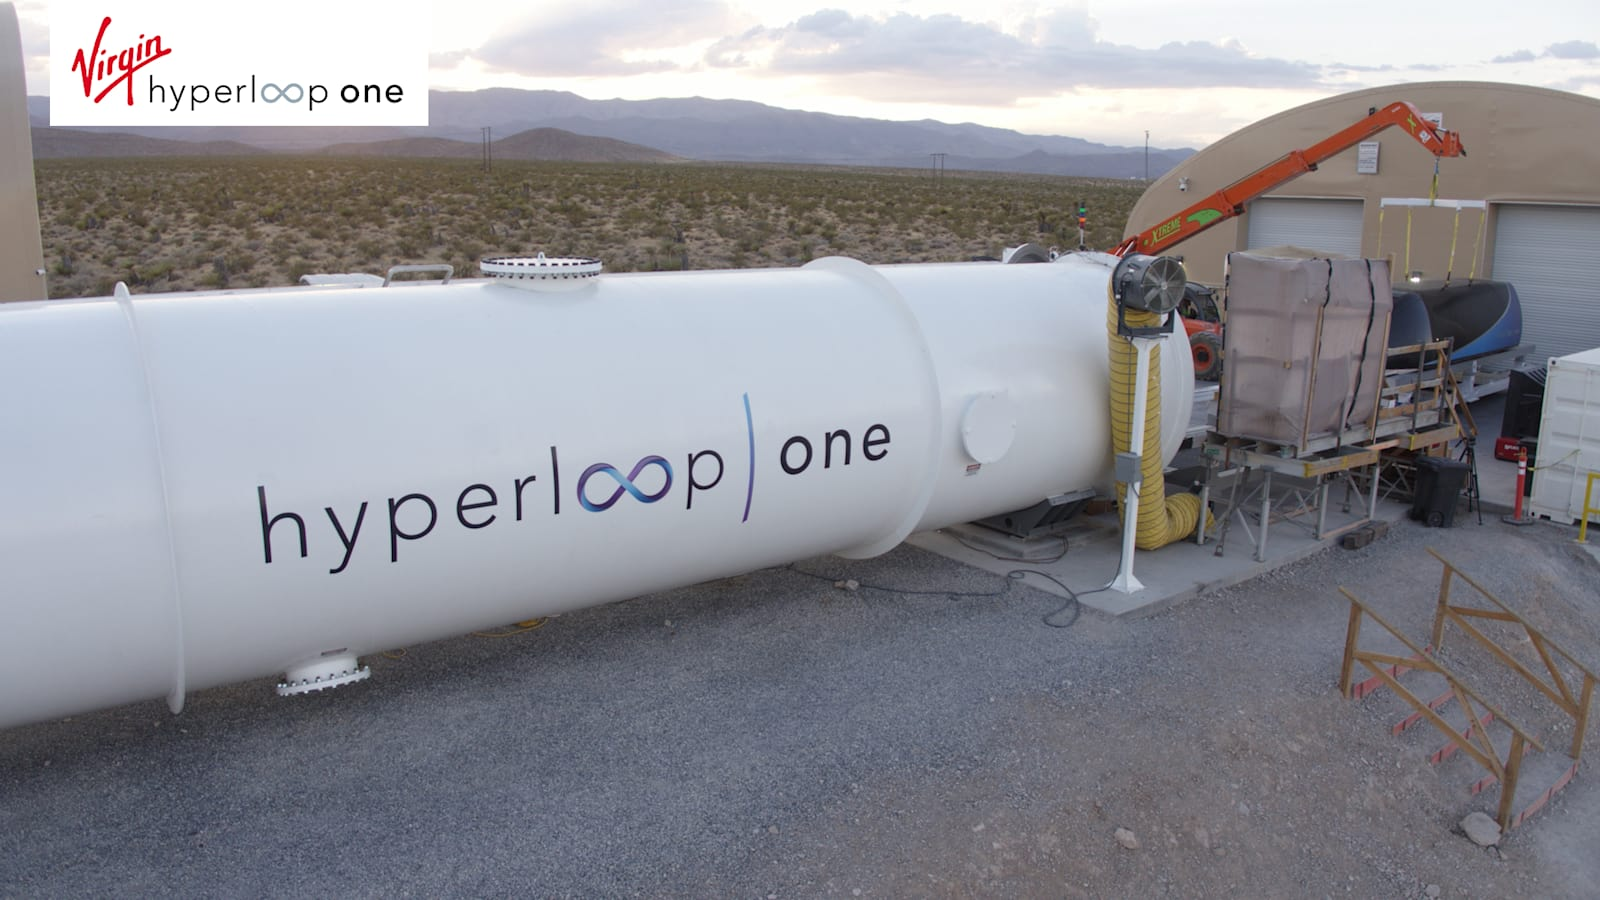 Virgin y Hyperloop One